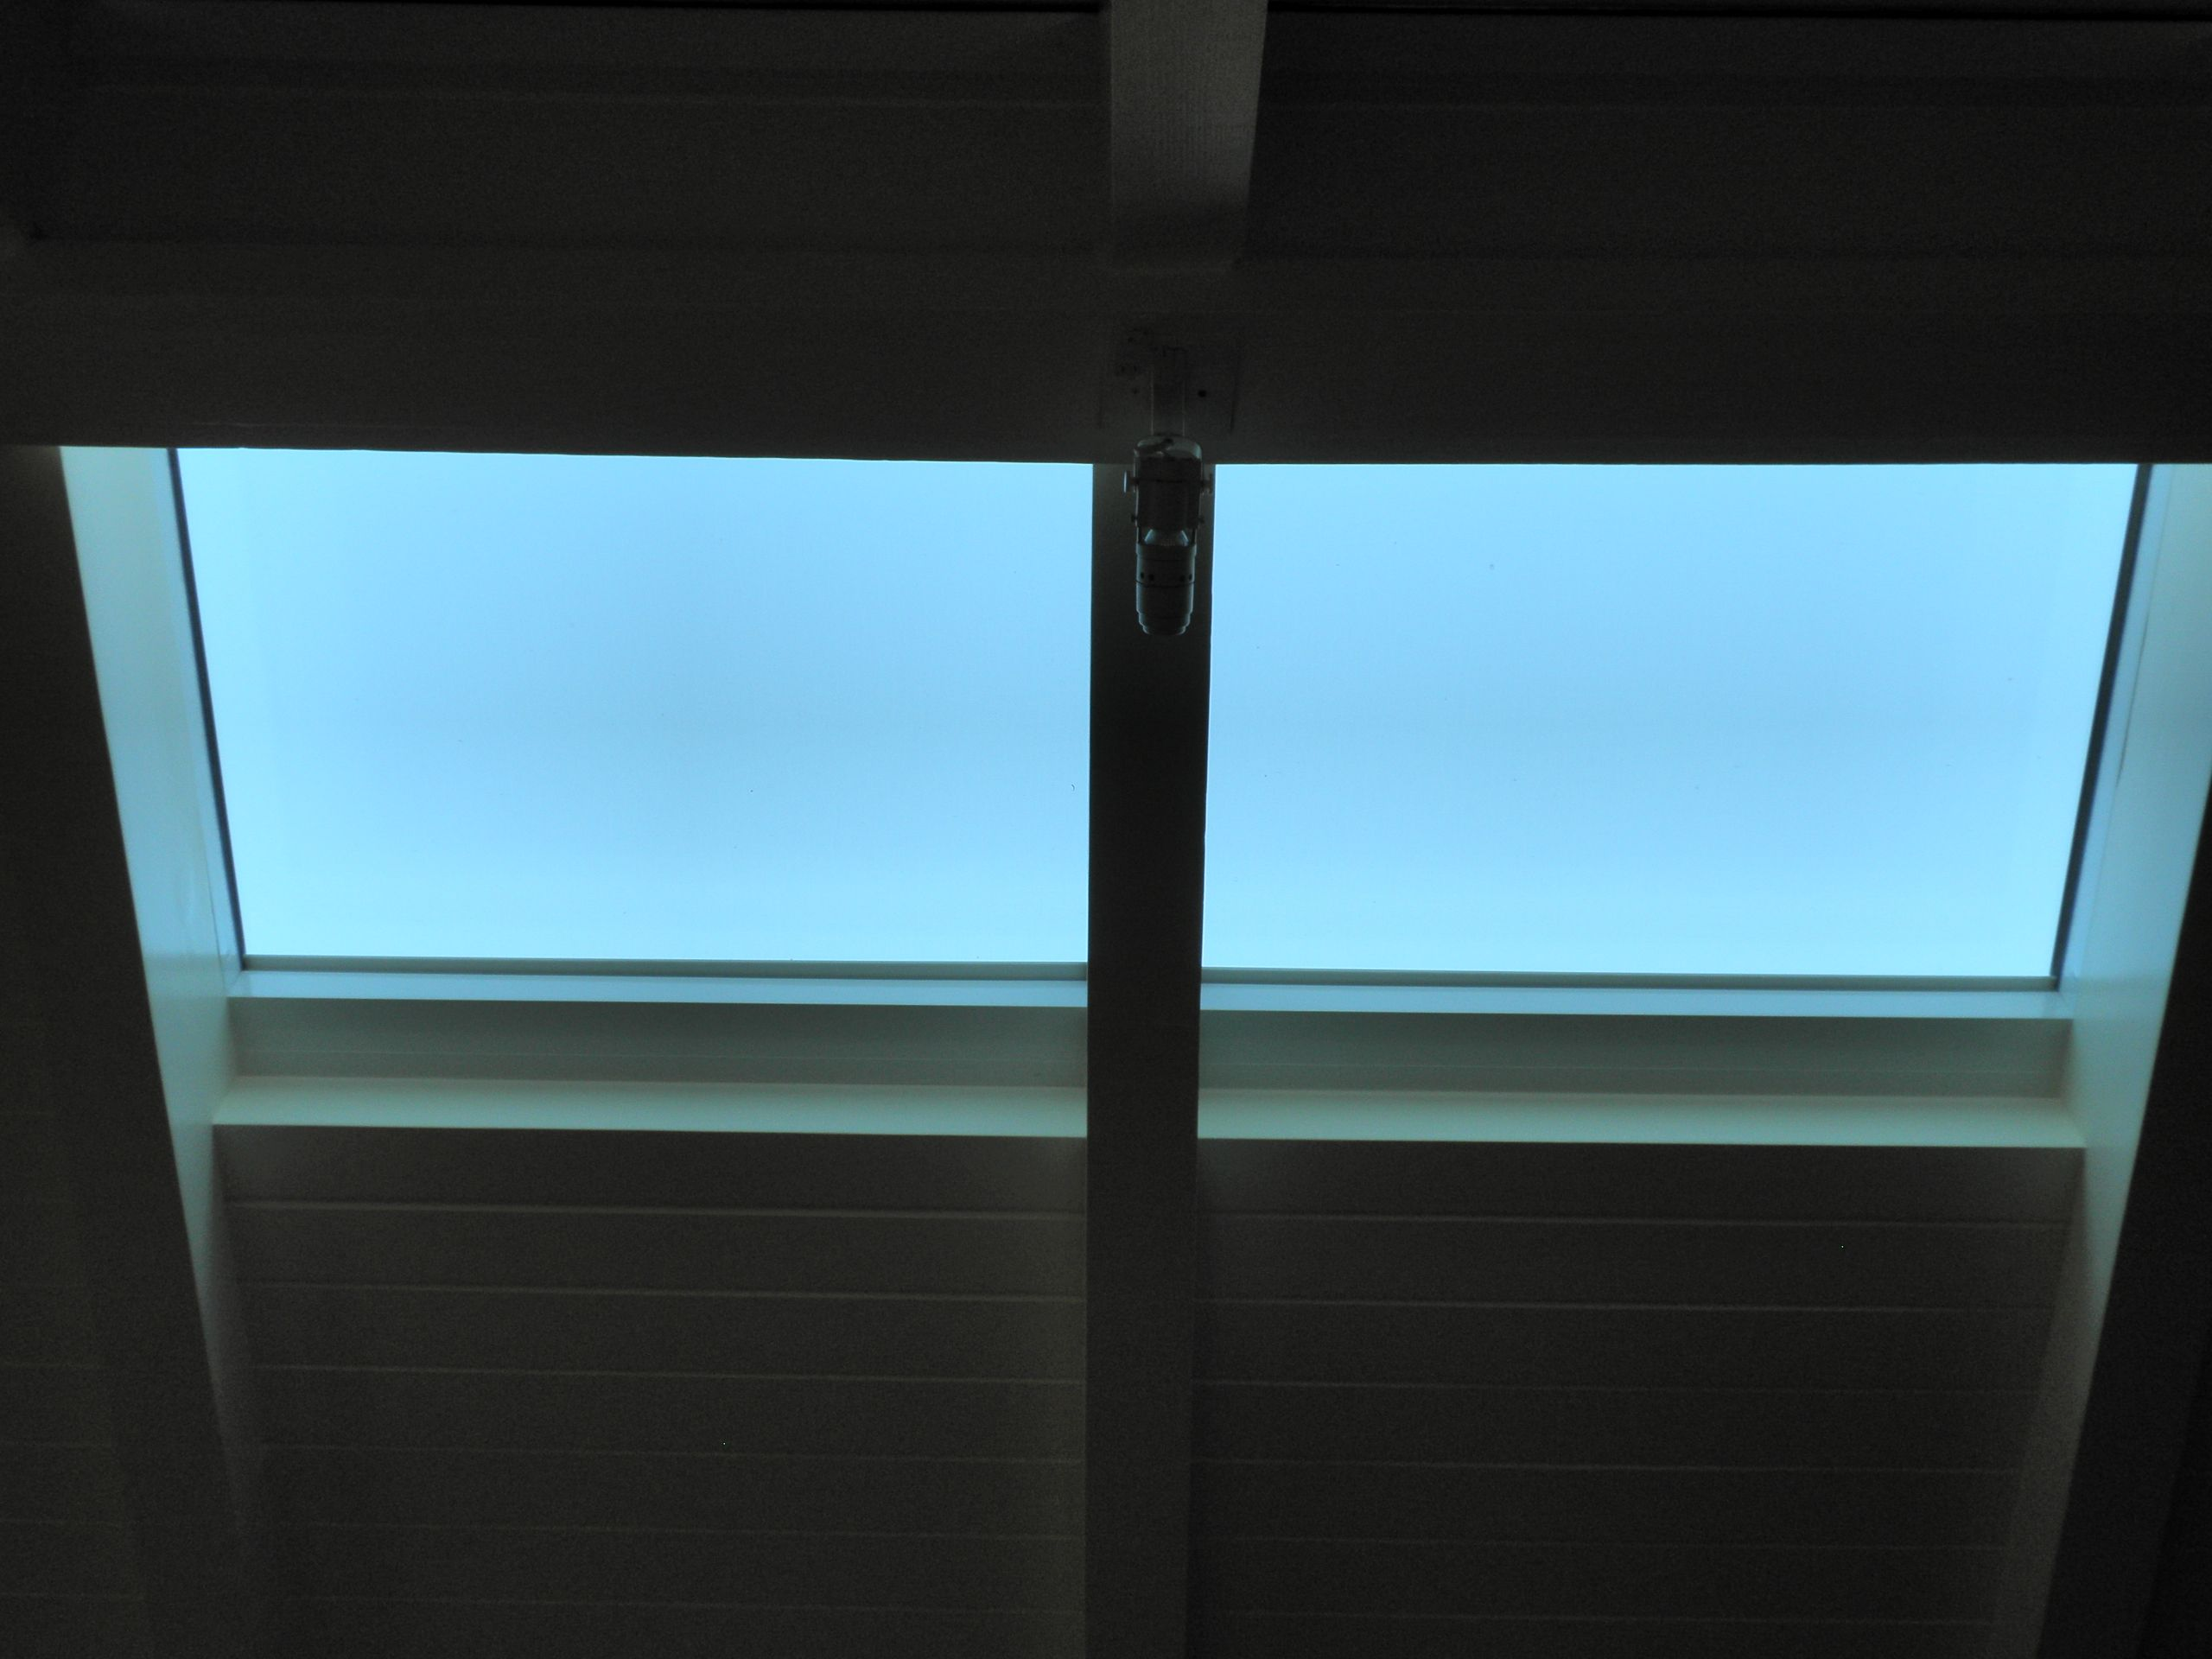 Recessed Lutron QS skylight shade. Note there are 4, 2 on each side ...